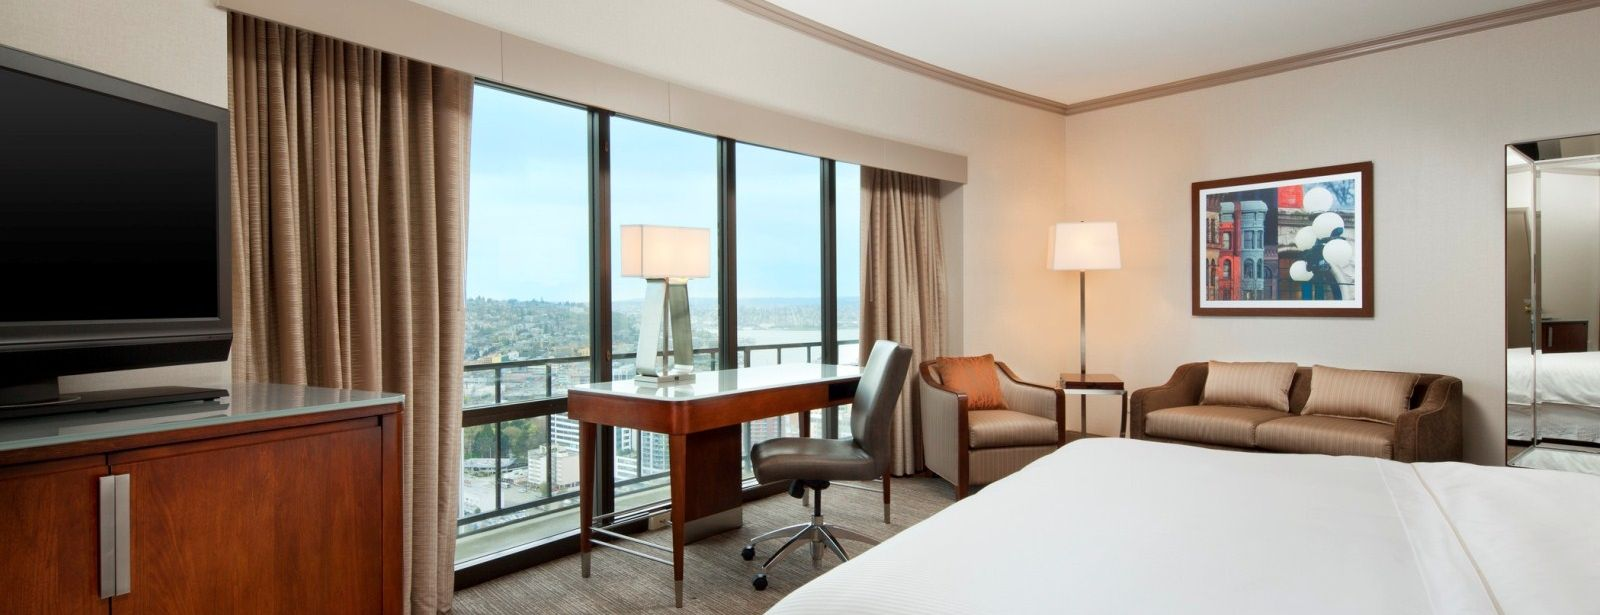 The Westin Seattle - Premium City View Guest Rooms